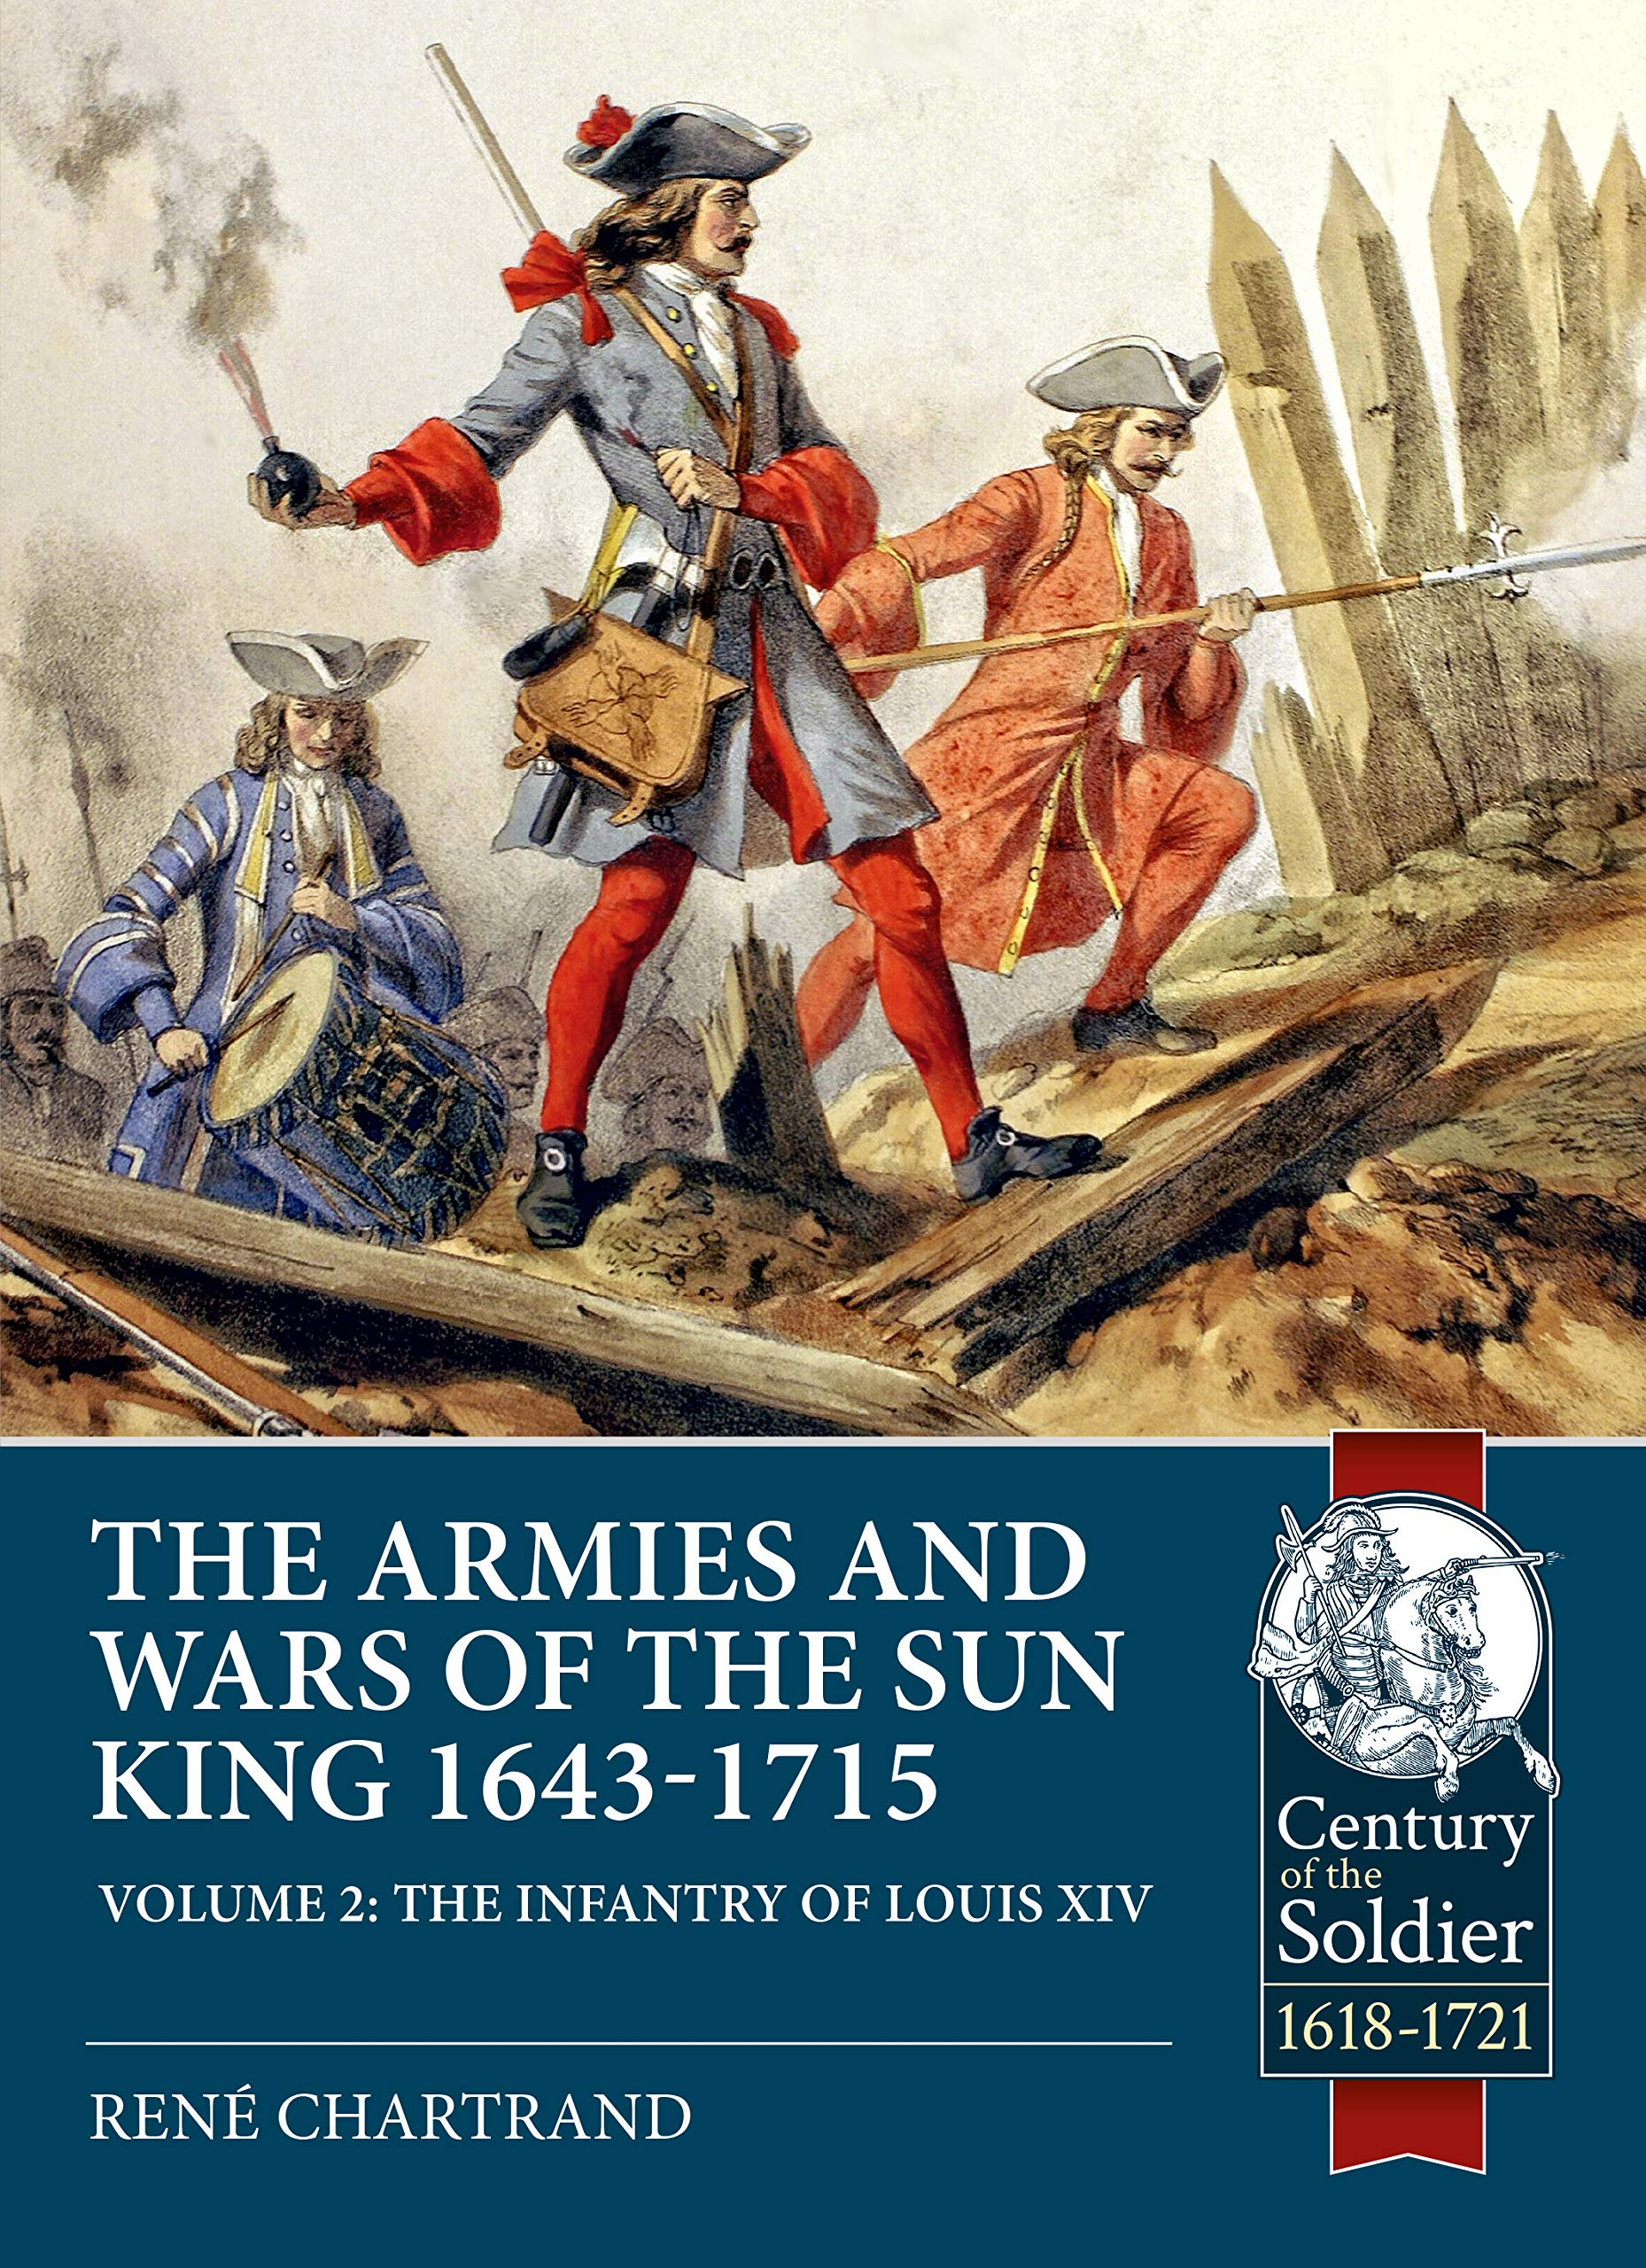 The Sun Kings Wars and Armies 1643-1715 Volume 2: The ...